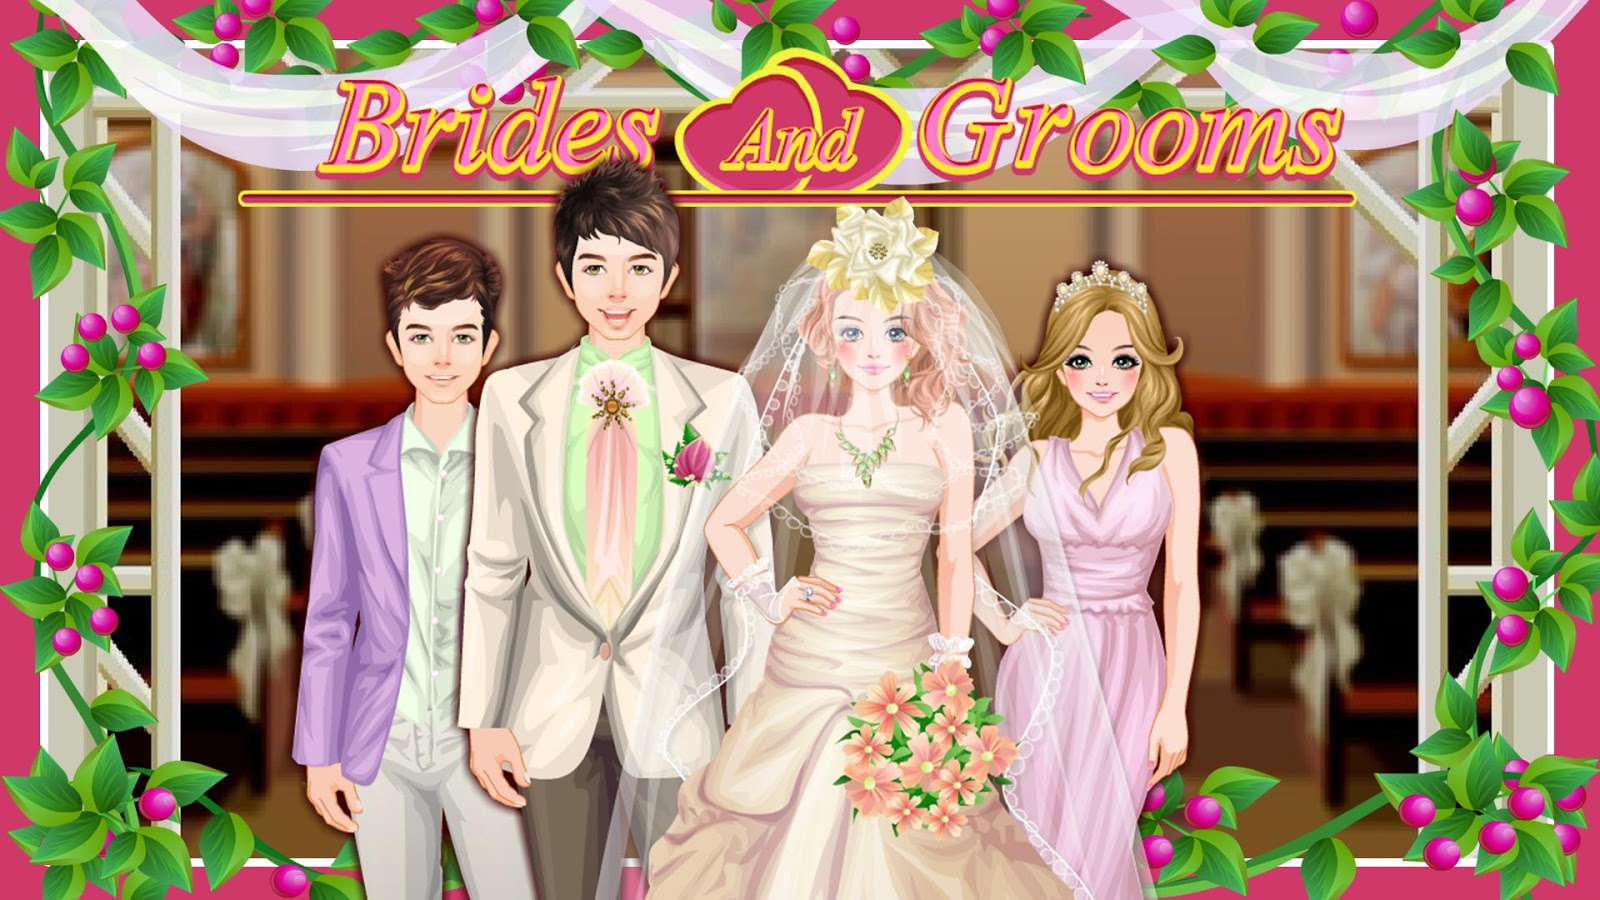 Wedding dress up games bride and groom flower girl dresses for Dress up games wedding